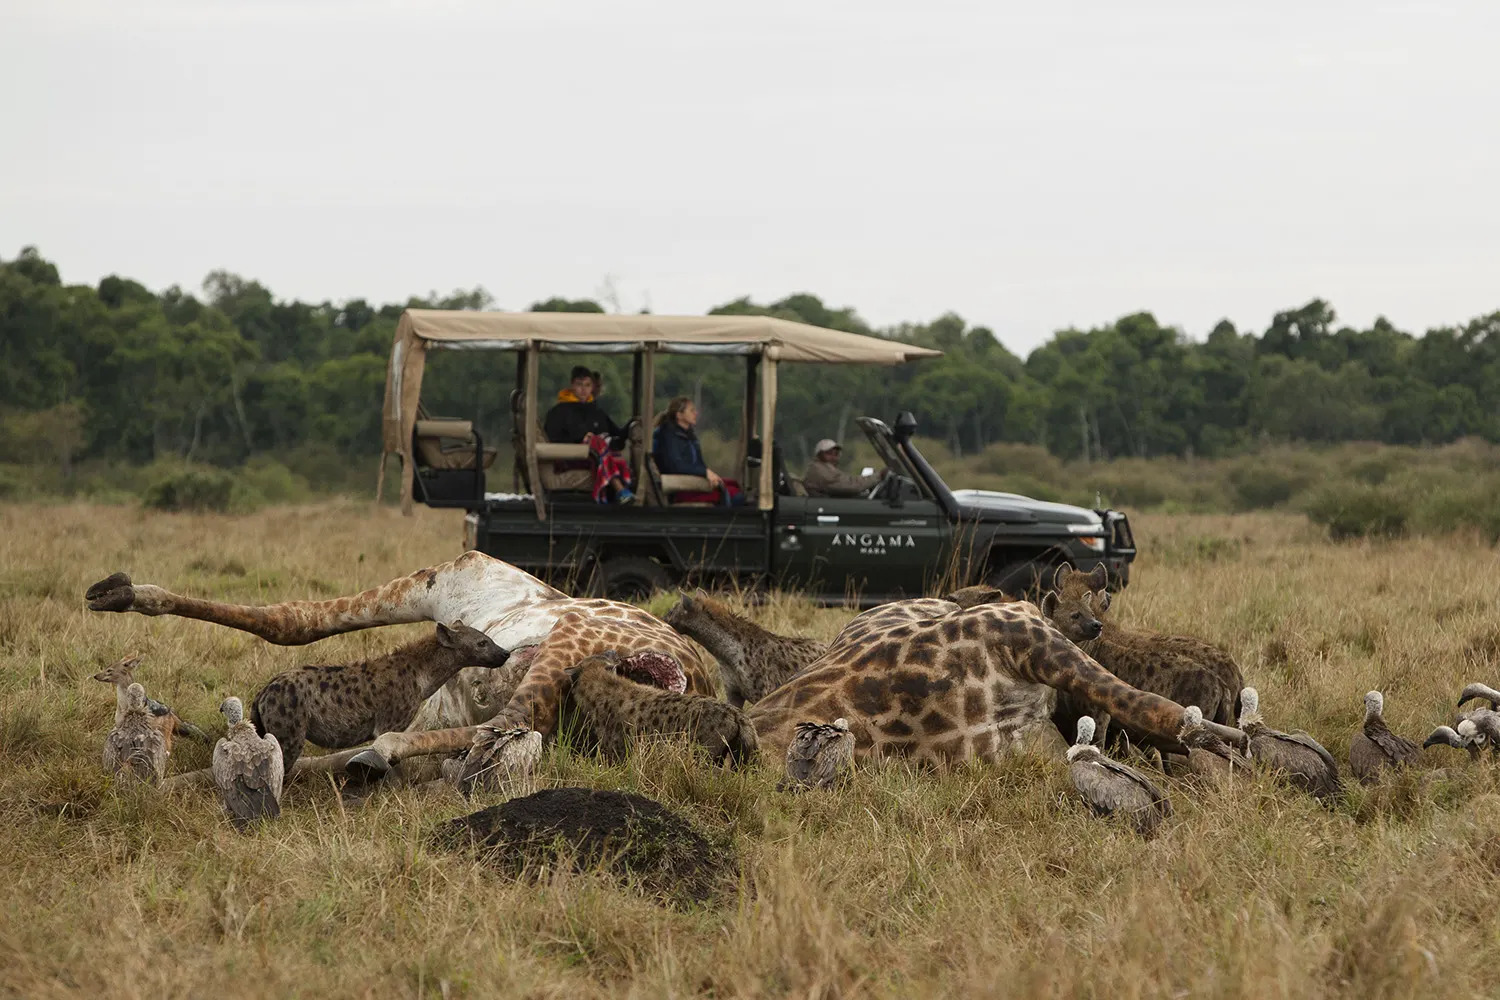 Giraffes corpses and vehicle